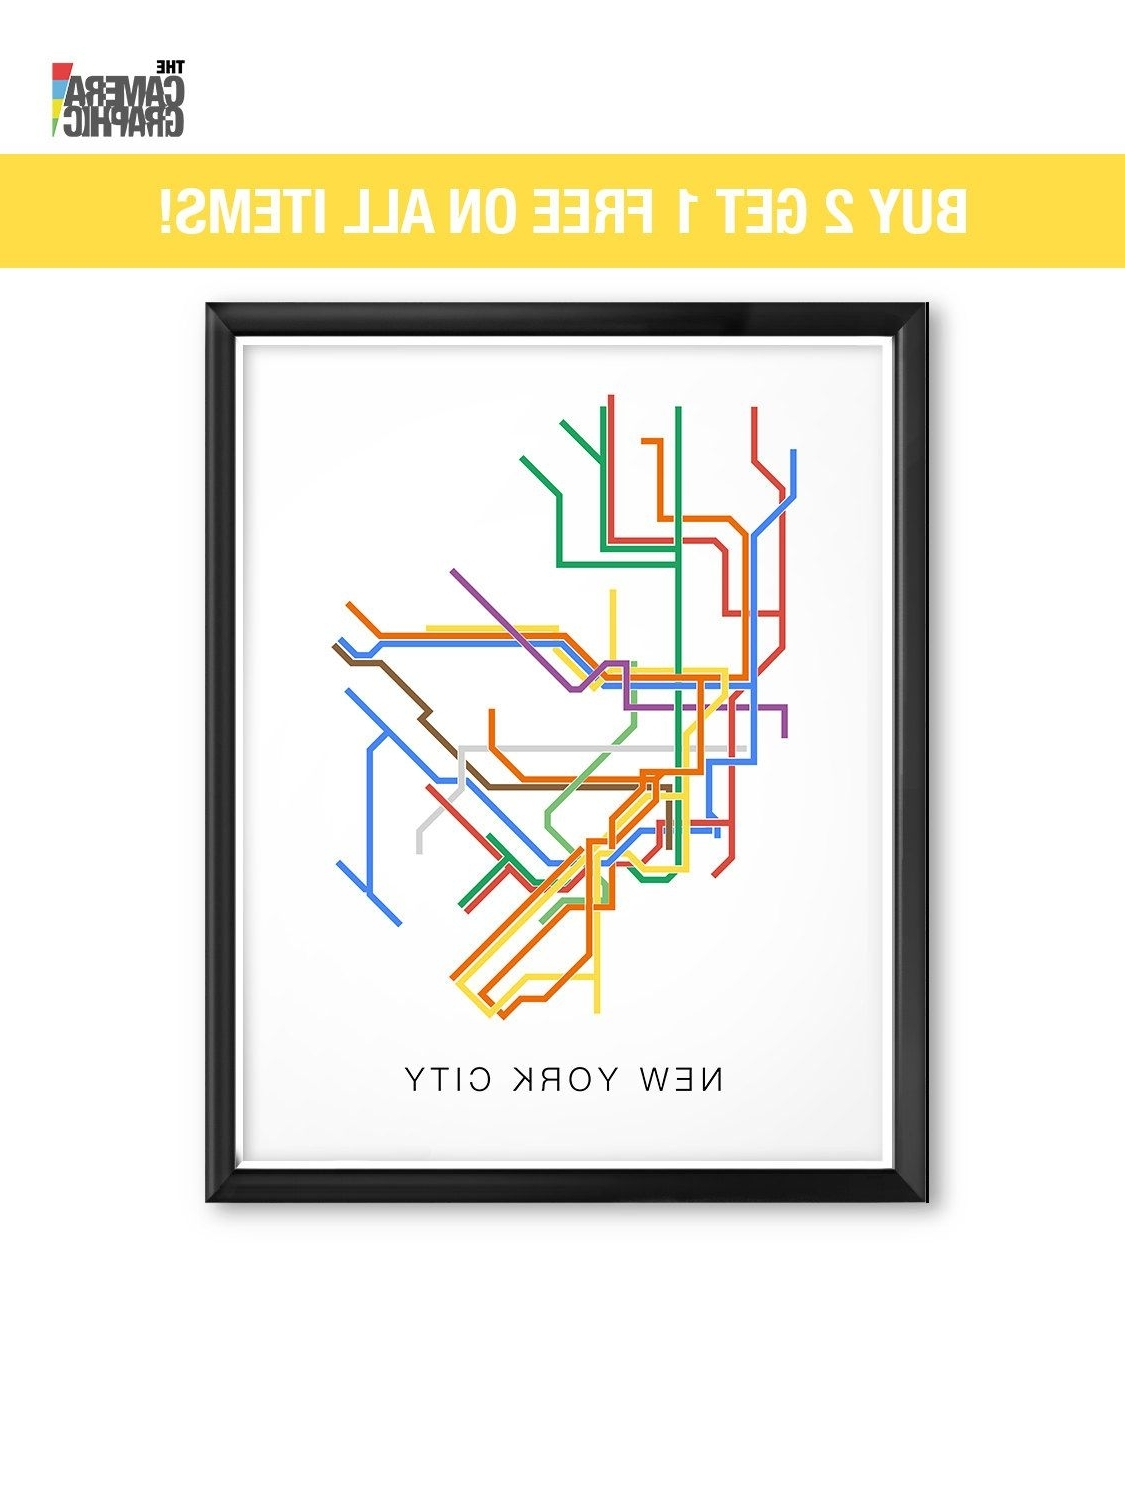 Famous Nyc Subway Map Wall Art With New York City Subway Map, City Transit Map Print, Nyc Map, Nyc Print (View 2 of 15)